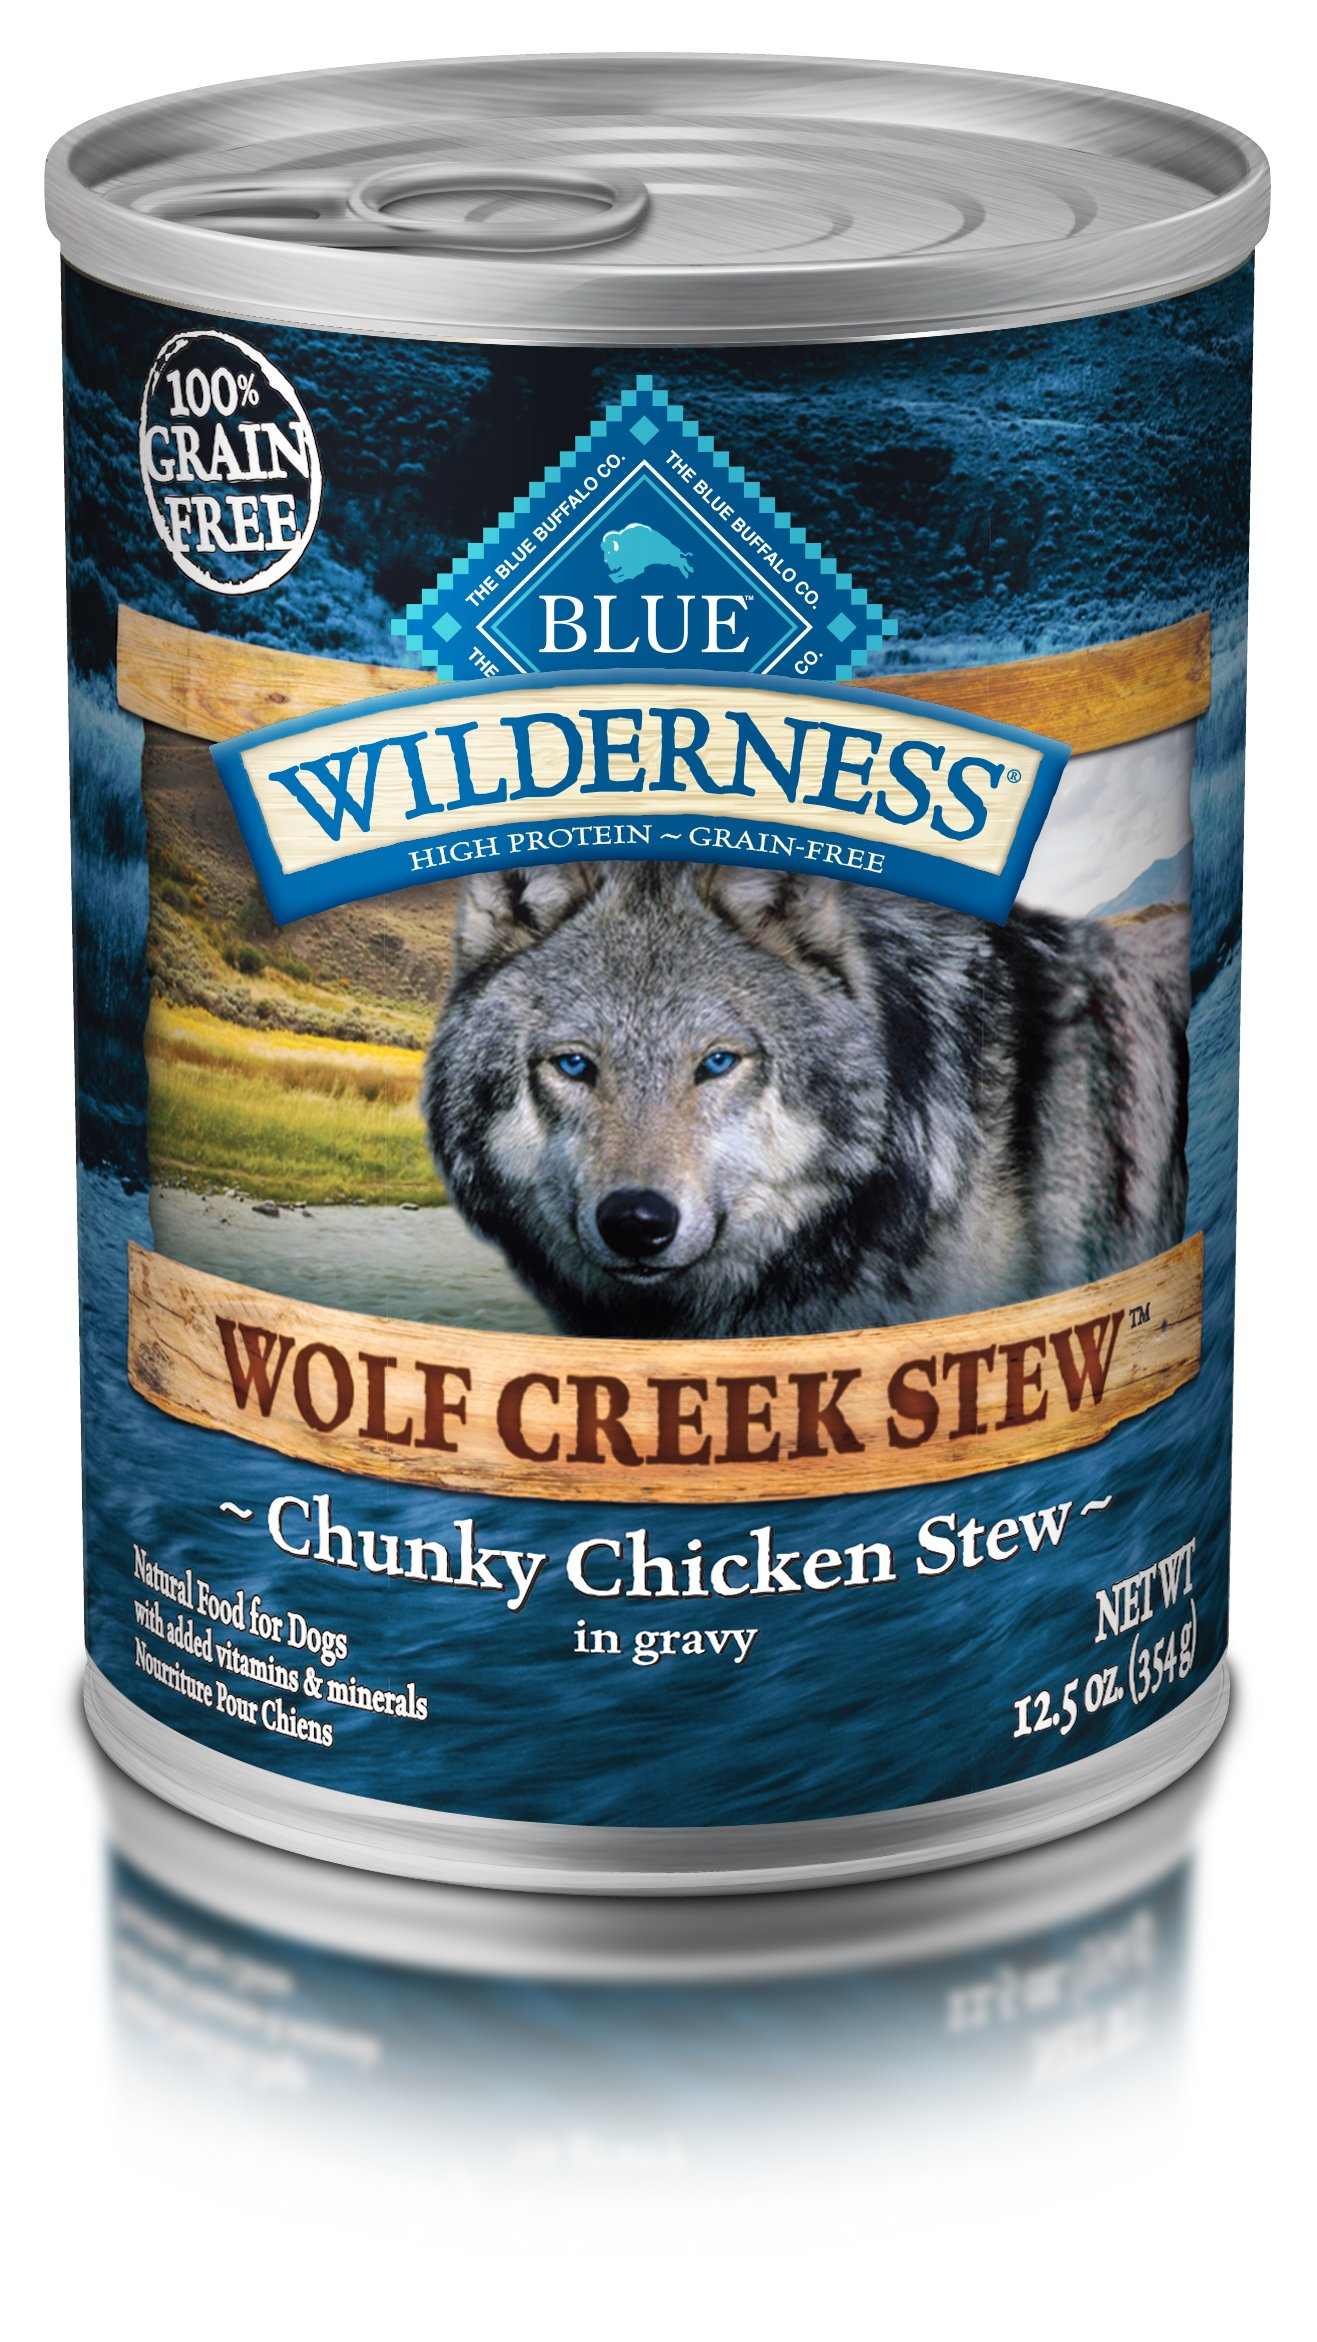 Blue Buffalo Wilderness Wolf Creek Stew High Protein Grain Free, Natural Wet Dog Food, Chunky Chicken Stew In Gravy 12.5-Oz Can (Pack Of 12) by BLUE BUFFALO